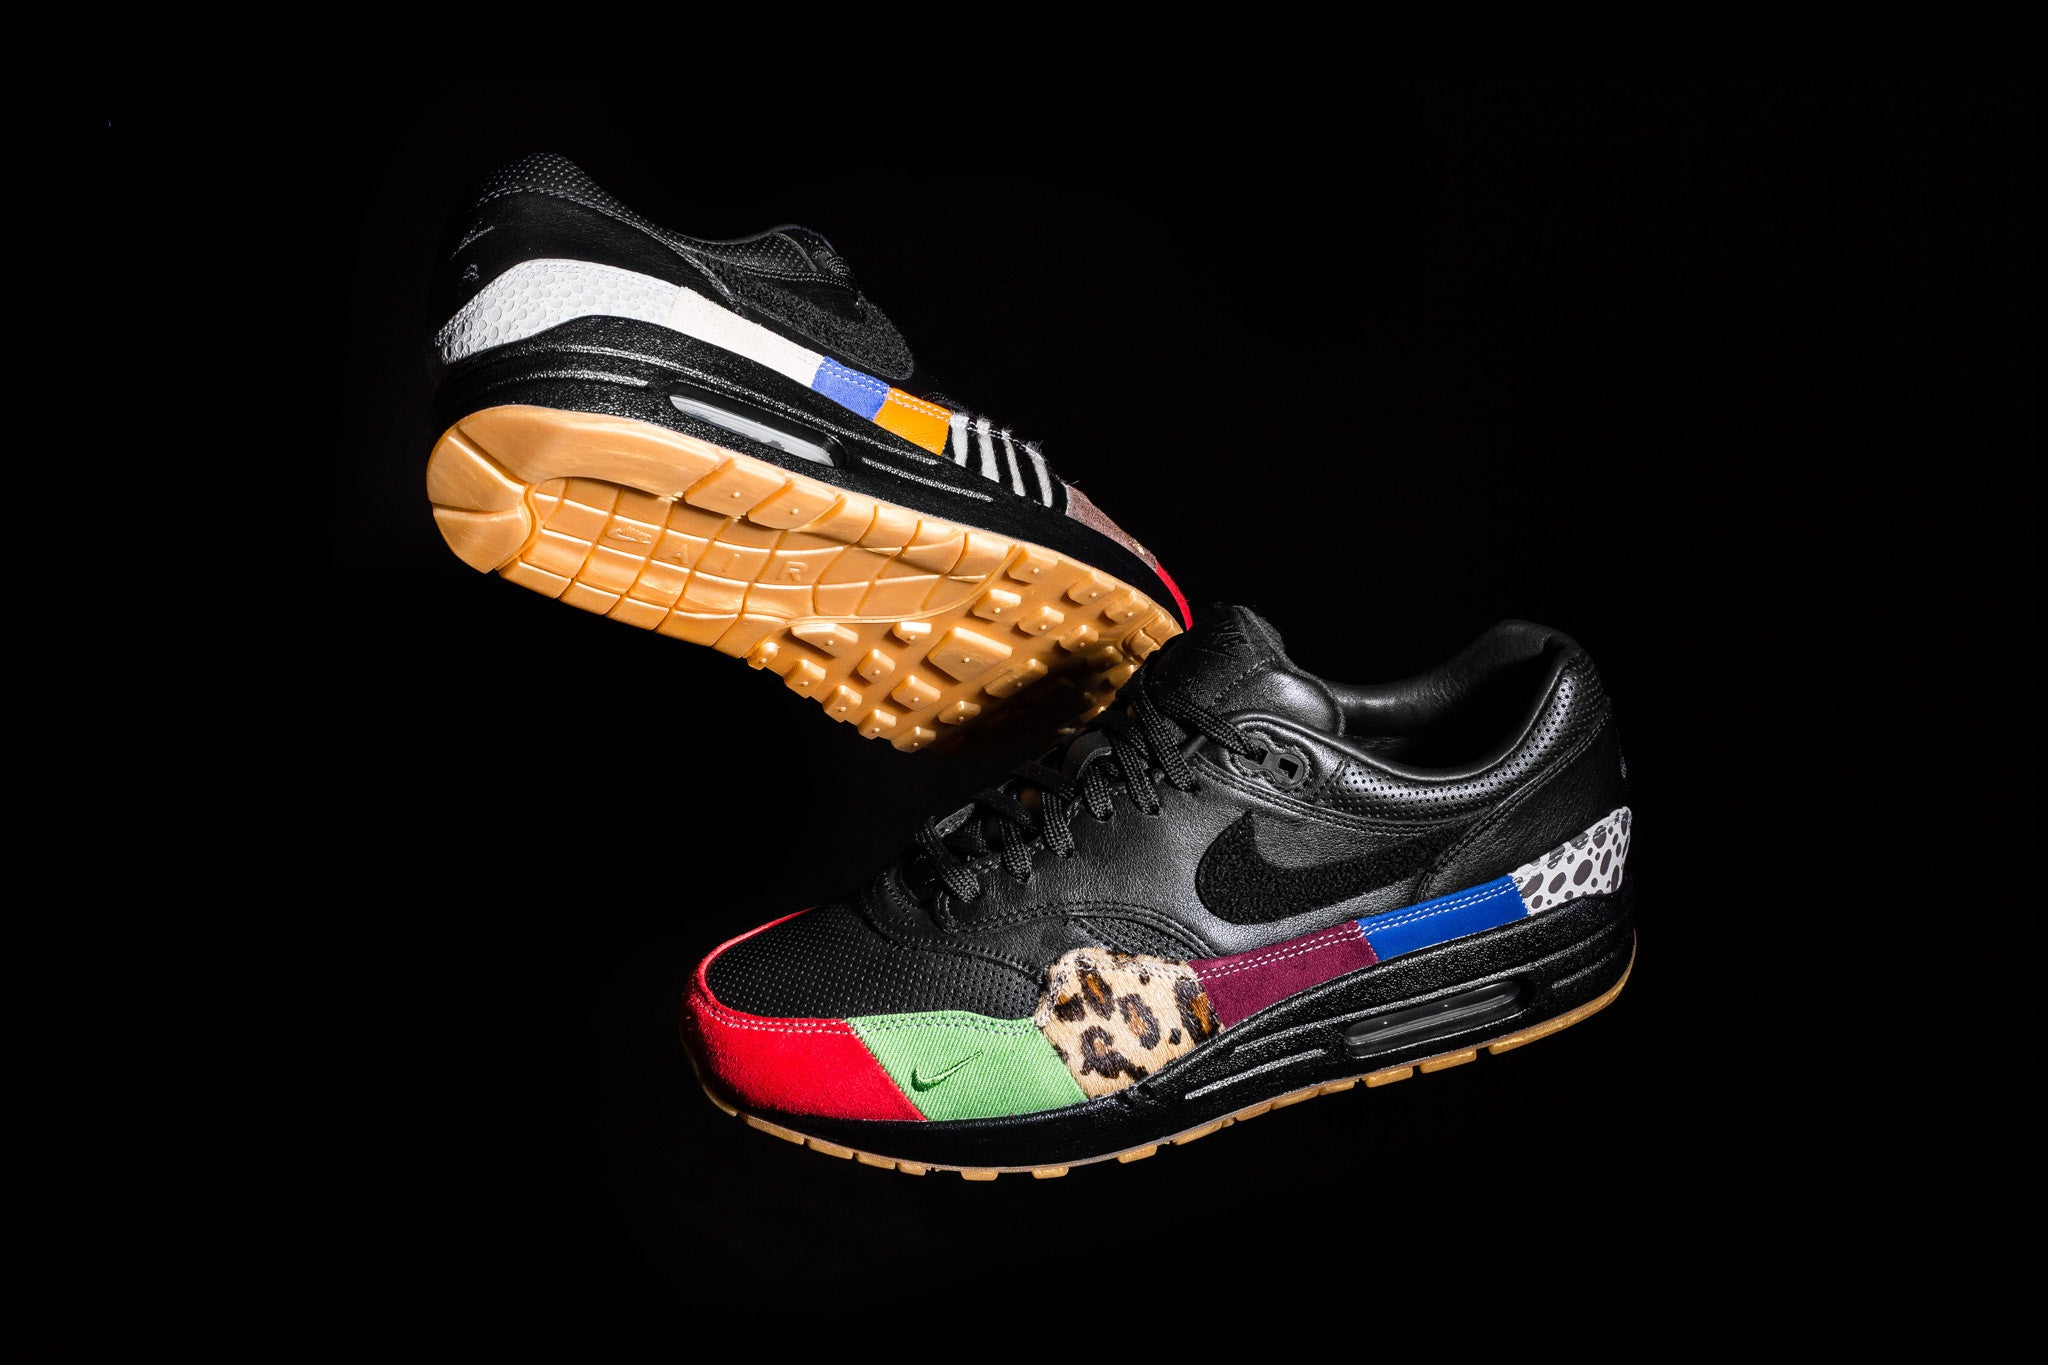 best service 8574e 8e047 As the Air Max 1 celebrates its 30th anniversary, some of the most  legendary Air Max 1 designs ever released come together to create the Air  Max 1 Master.